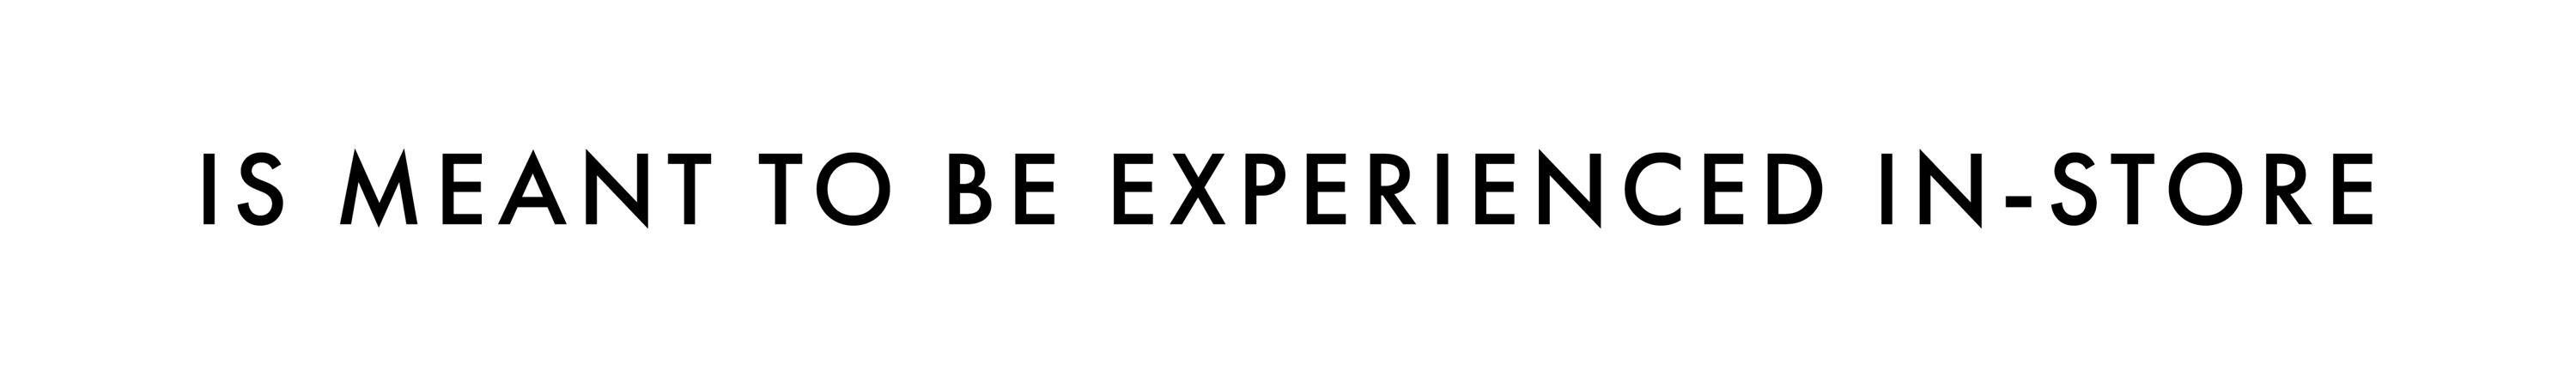 IS MEANT TO BE EXPERIENCED IN-STORE